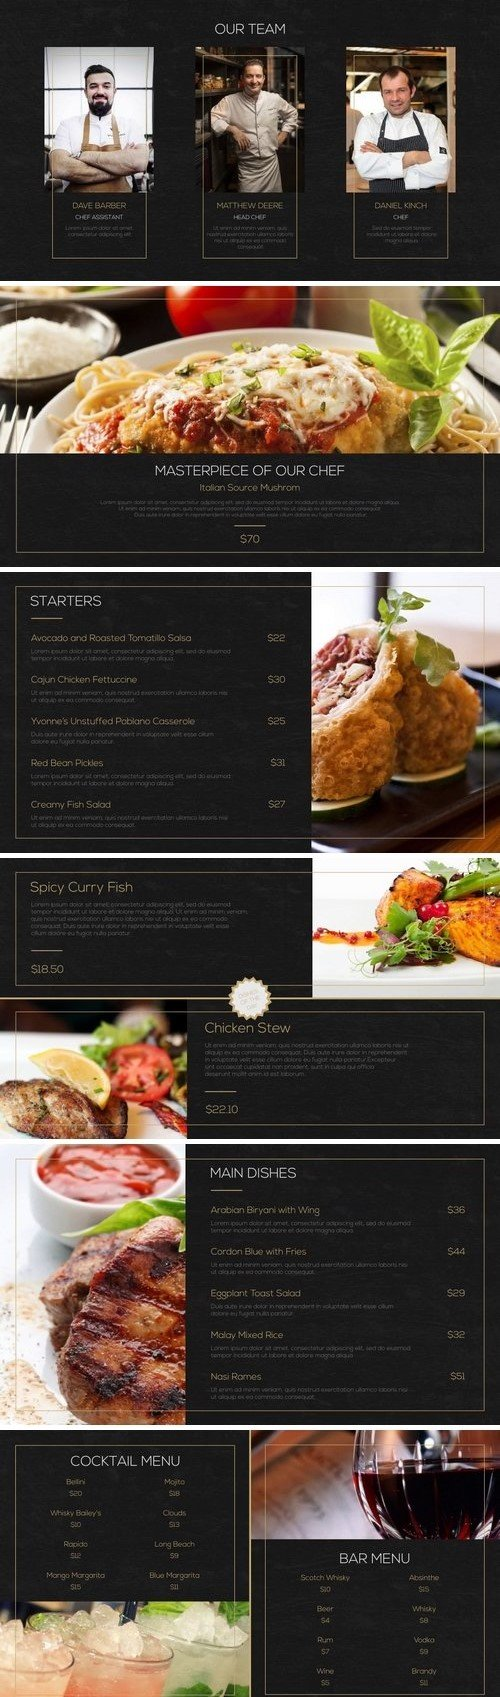 Restaurant Promo After Effects Templates 61103